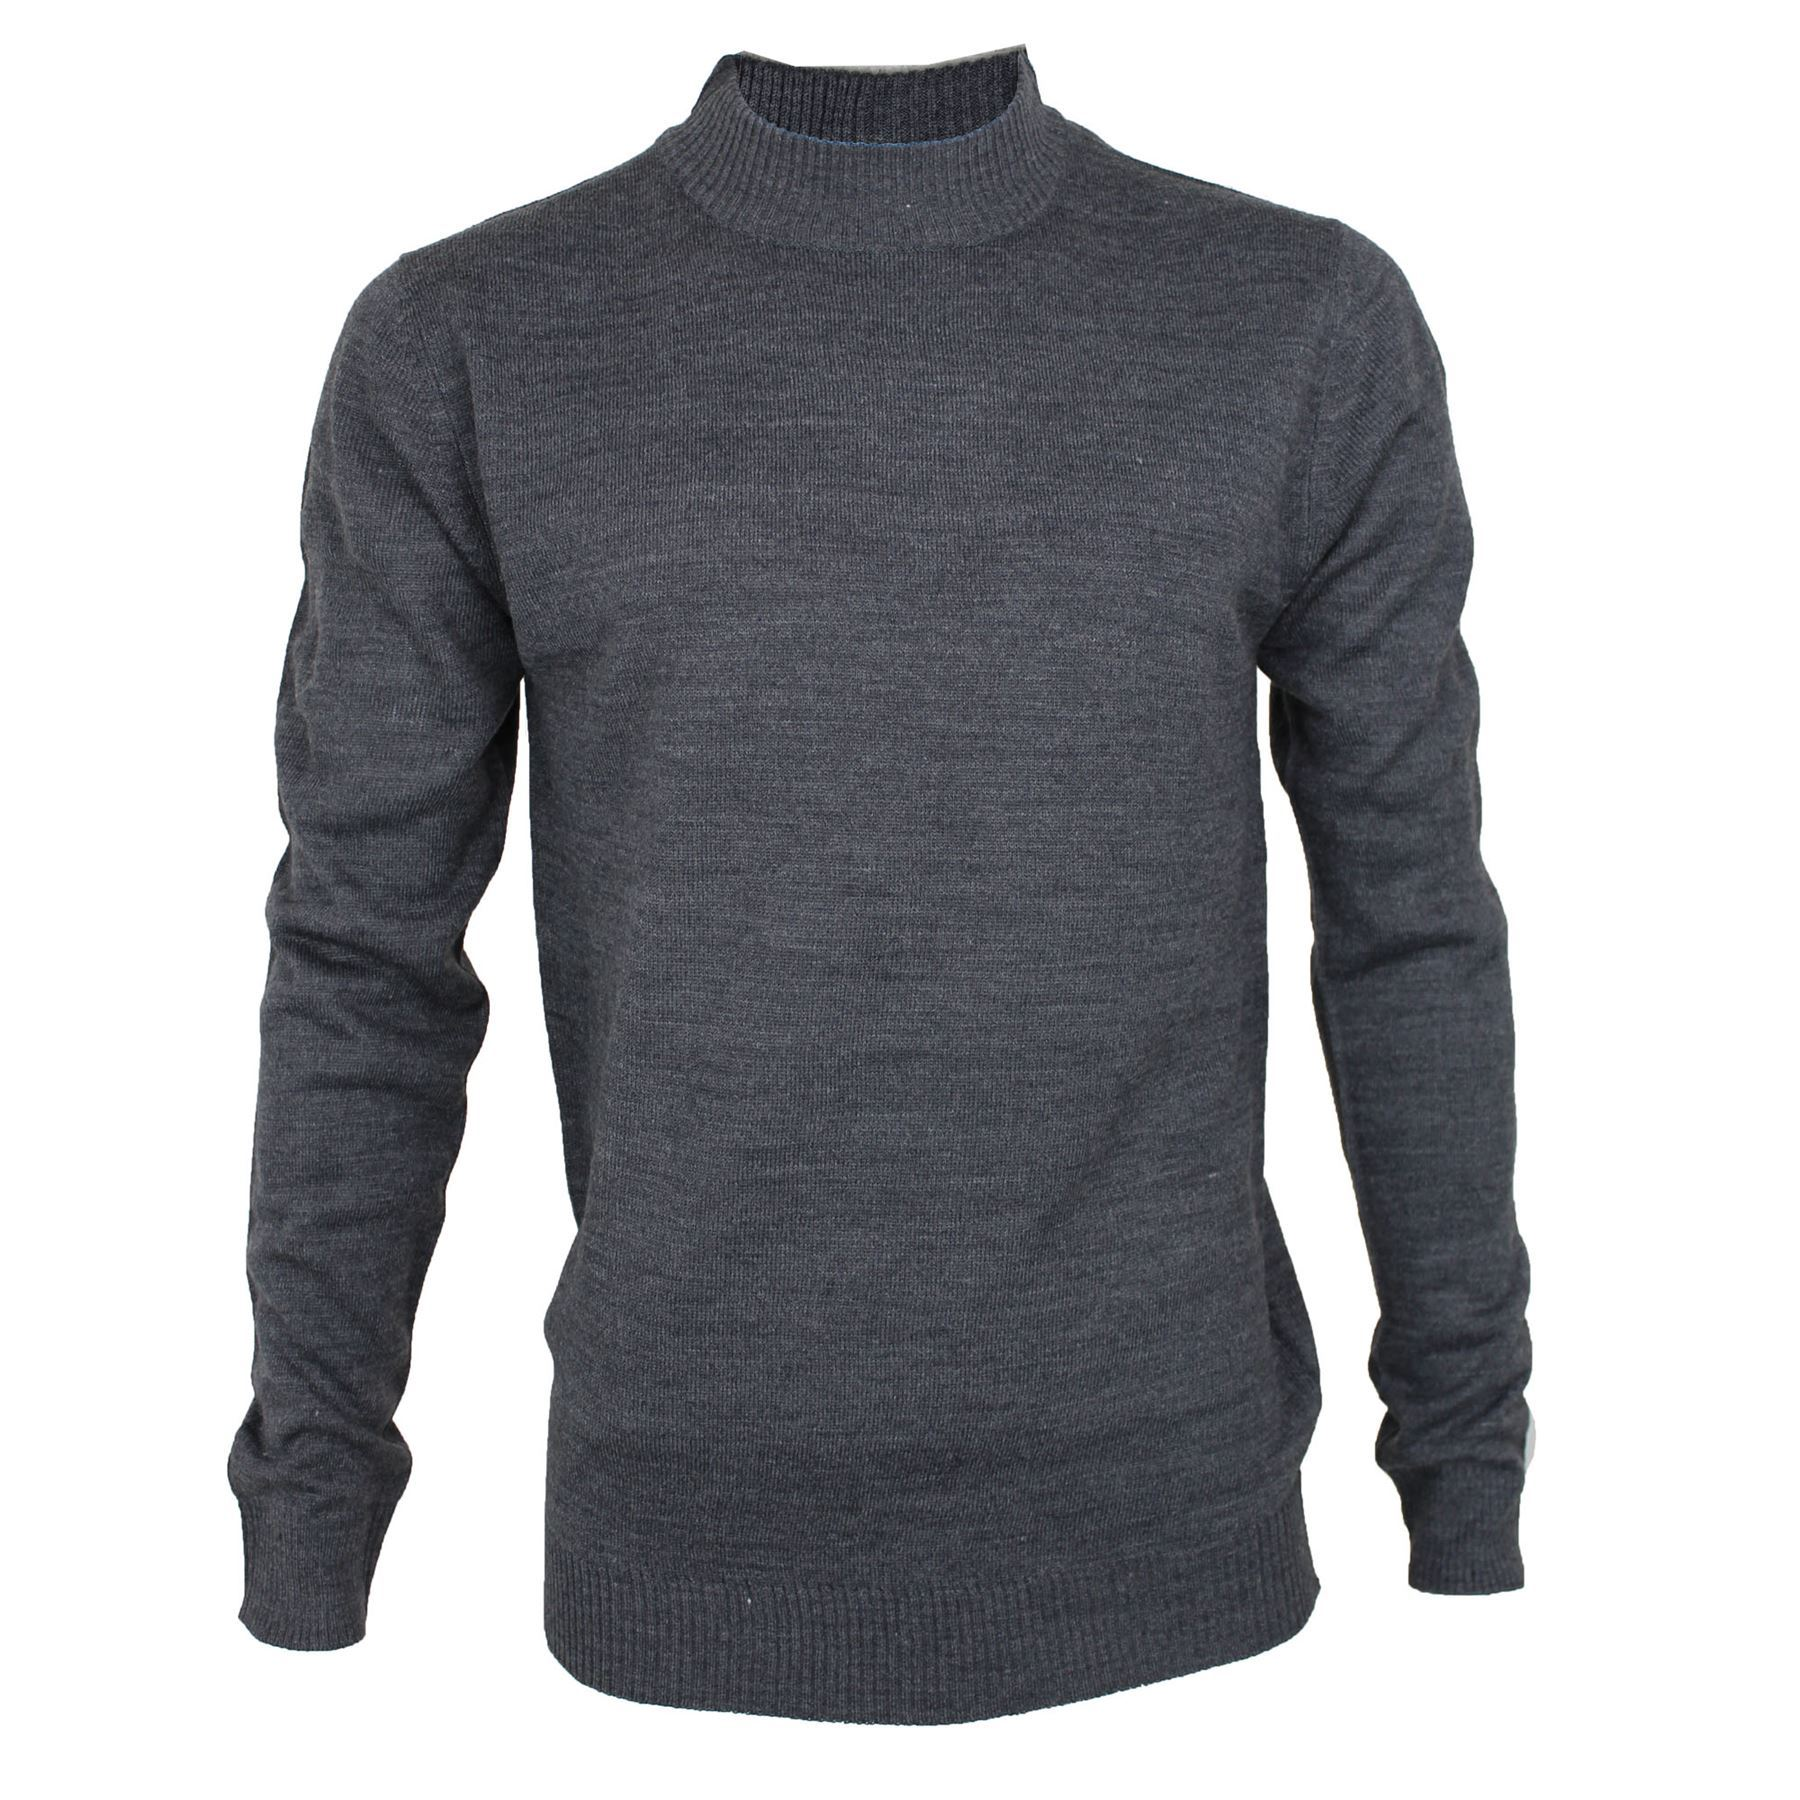 Best selling Mens Jumpers at Stylight › items Sale: up to −80% Mens pick brands» Shop now! Sweater for Men Jumper, Beige, Extrafine Baby Merinos Wool, , L M XL. AUD $ Delivery: AUD $ Try it over a thin knit turtleneck for a color-blocked combo or keep it casually preppy with a crisp oxford and.